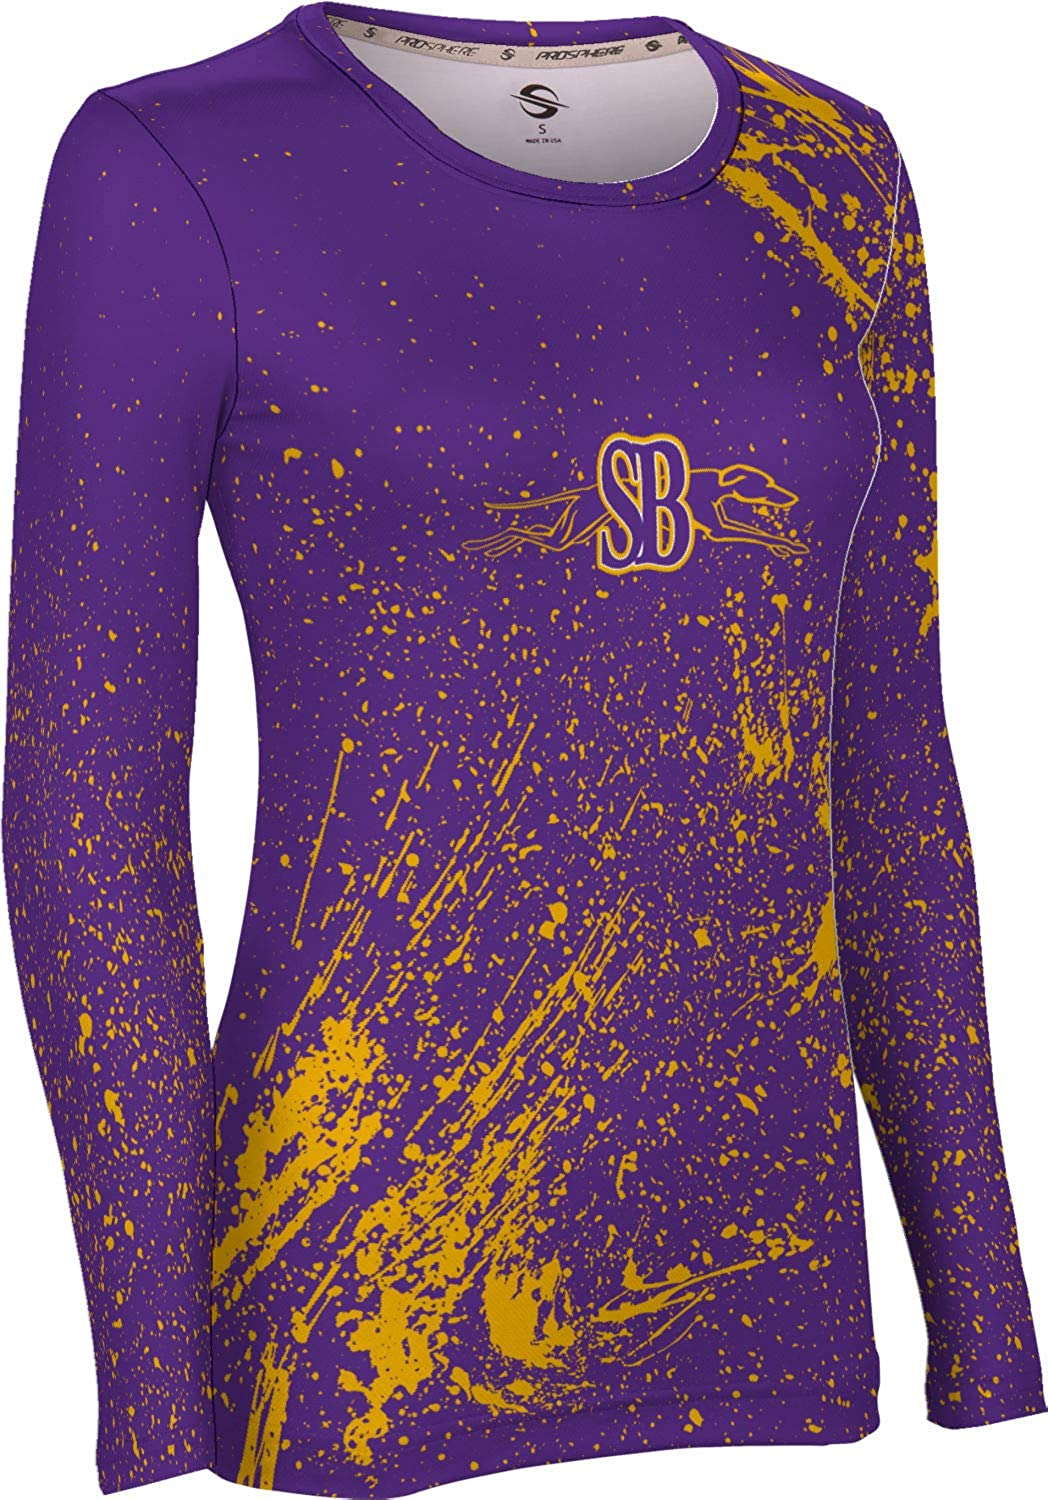 Splatter ProSphere San Benito High School Womens Long Sleeve Tee